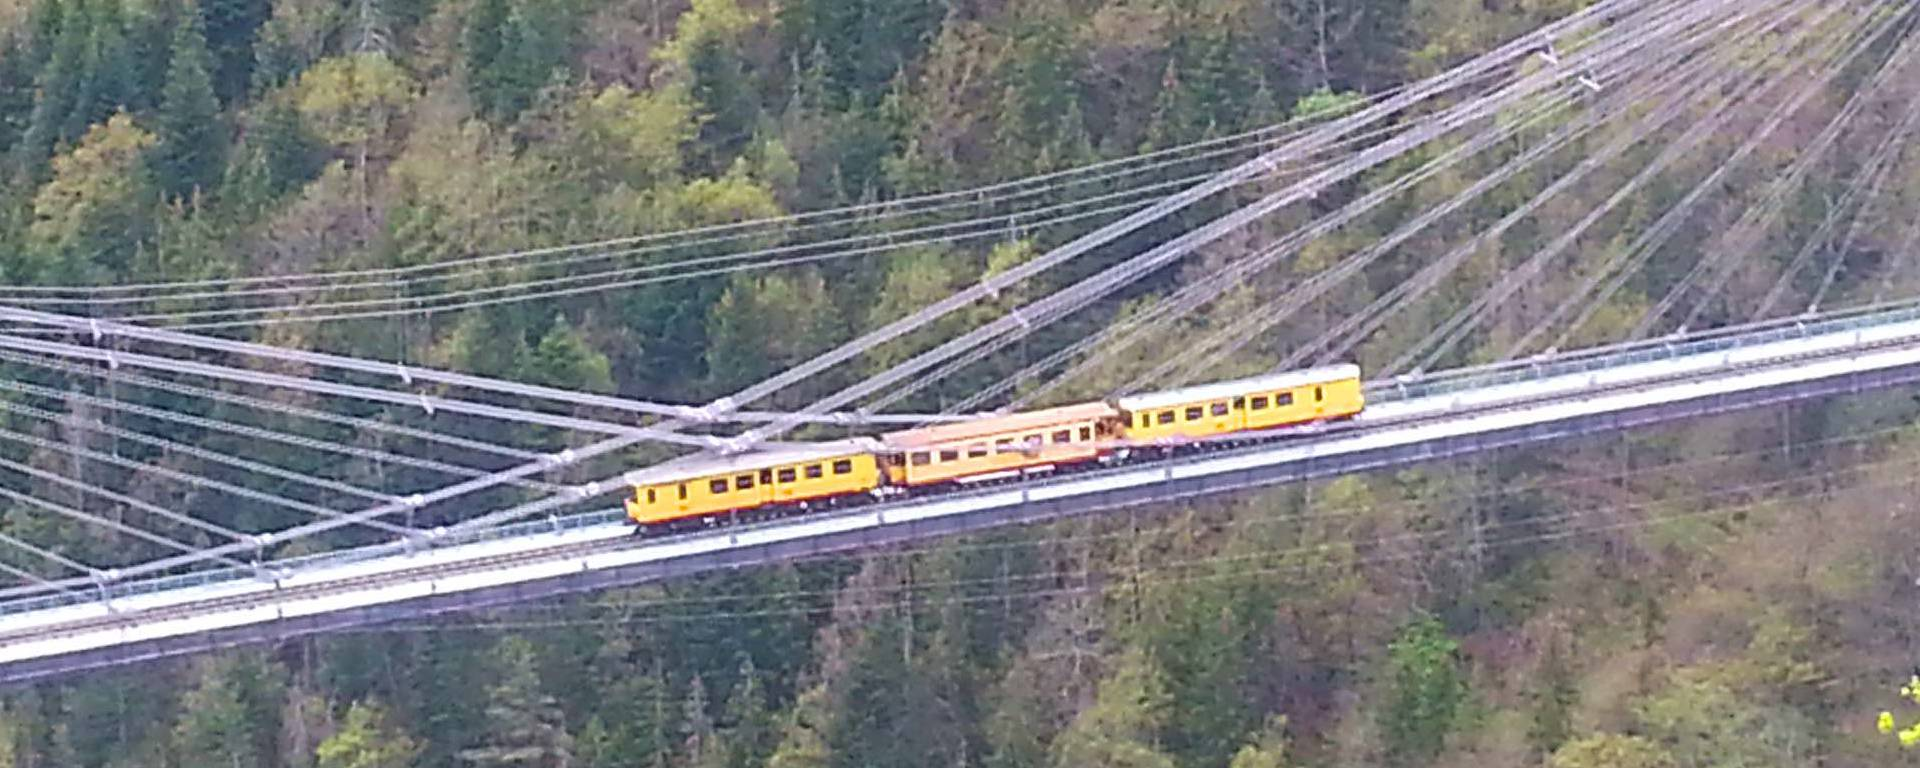 Le Train Jaune sur le pont de Gisclard © F. Berlic